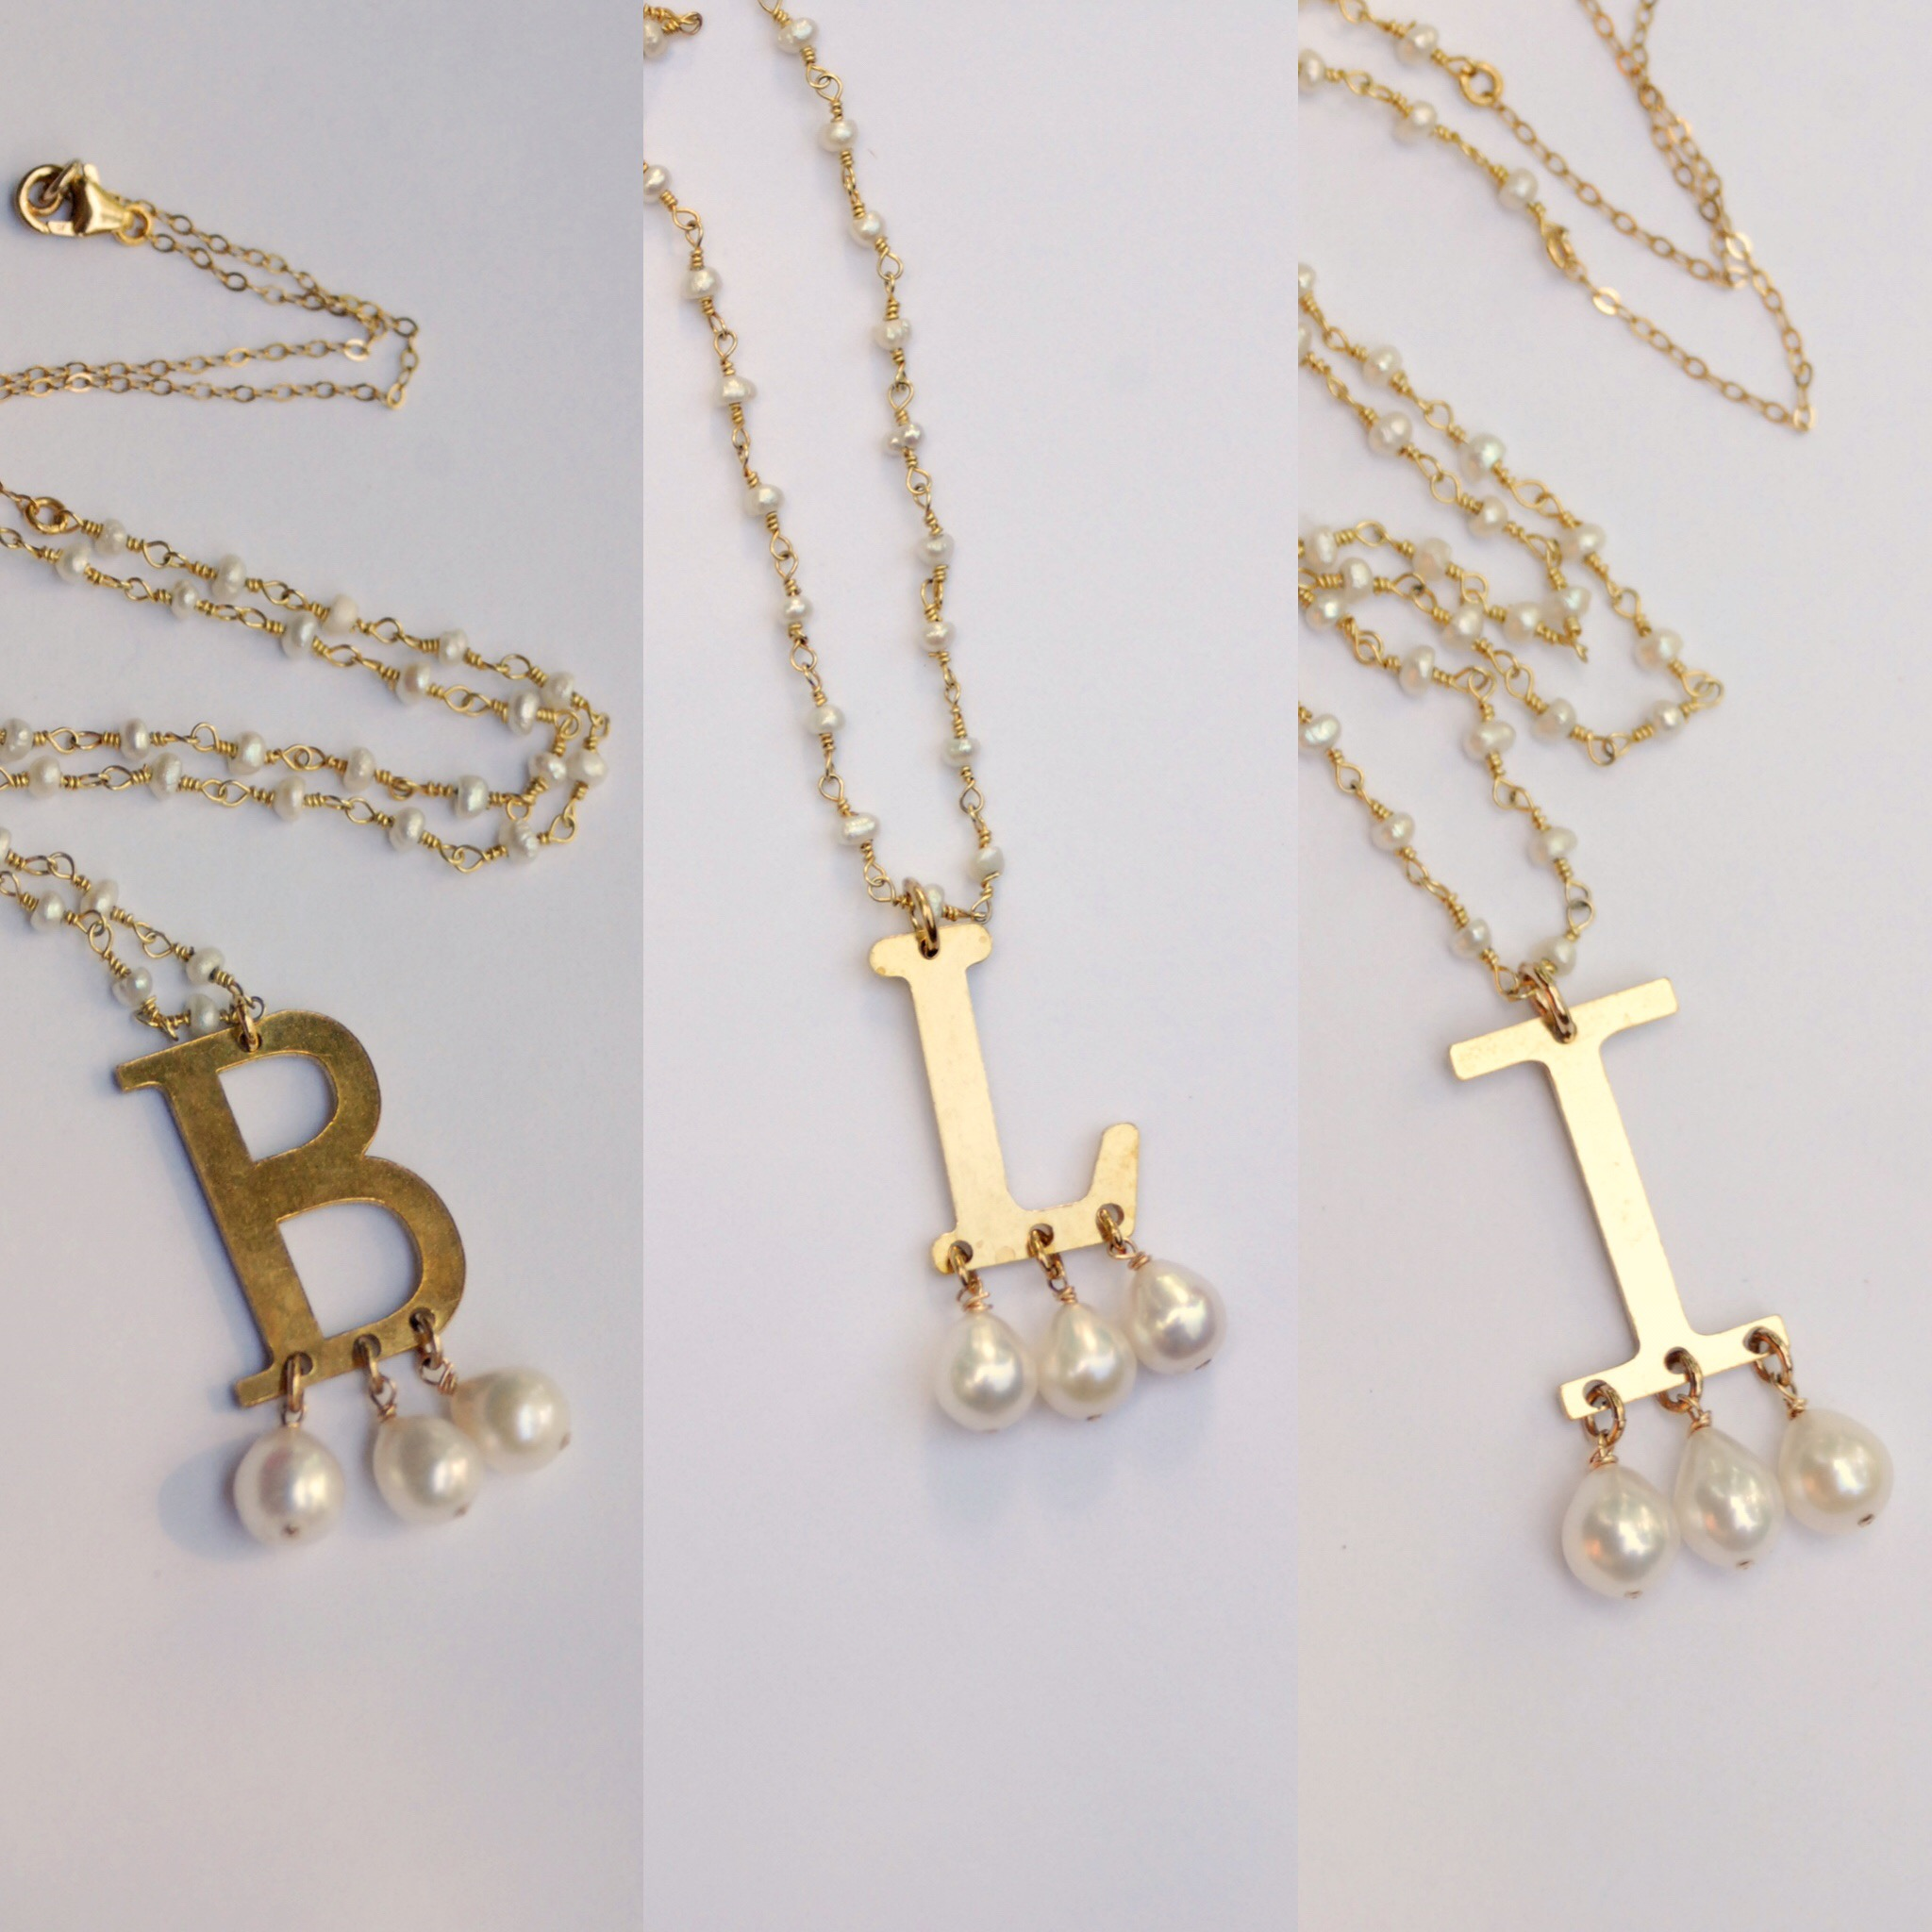 Nearly every letter of the alphabet is available, so you can wear your own  Anne Boleyn style monogram necklace.